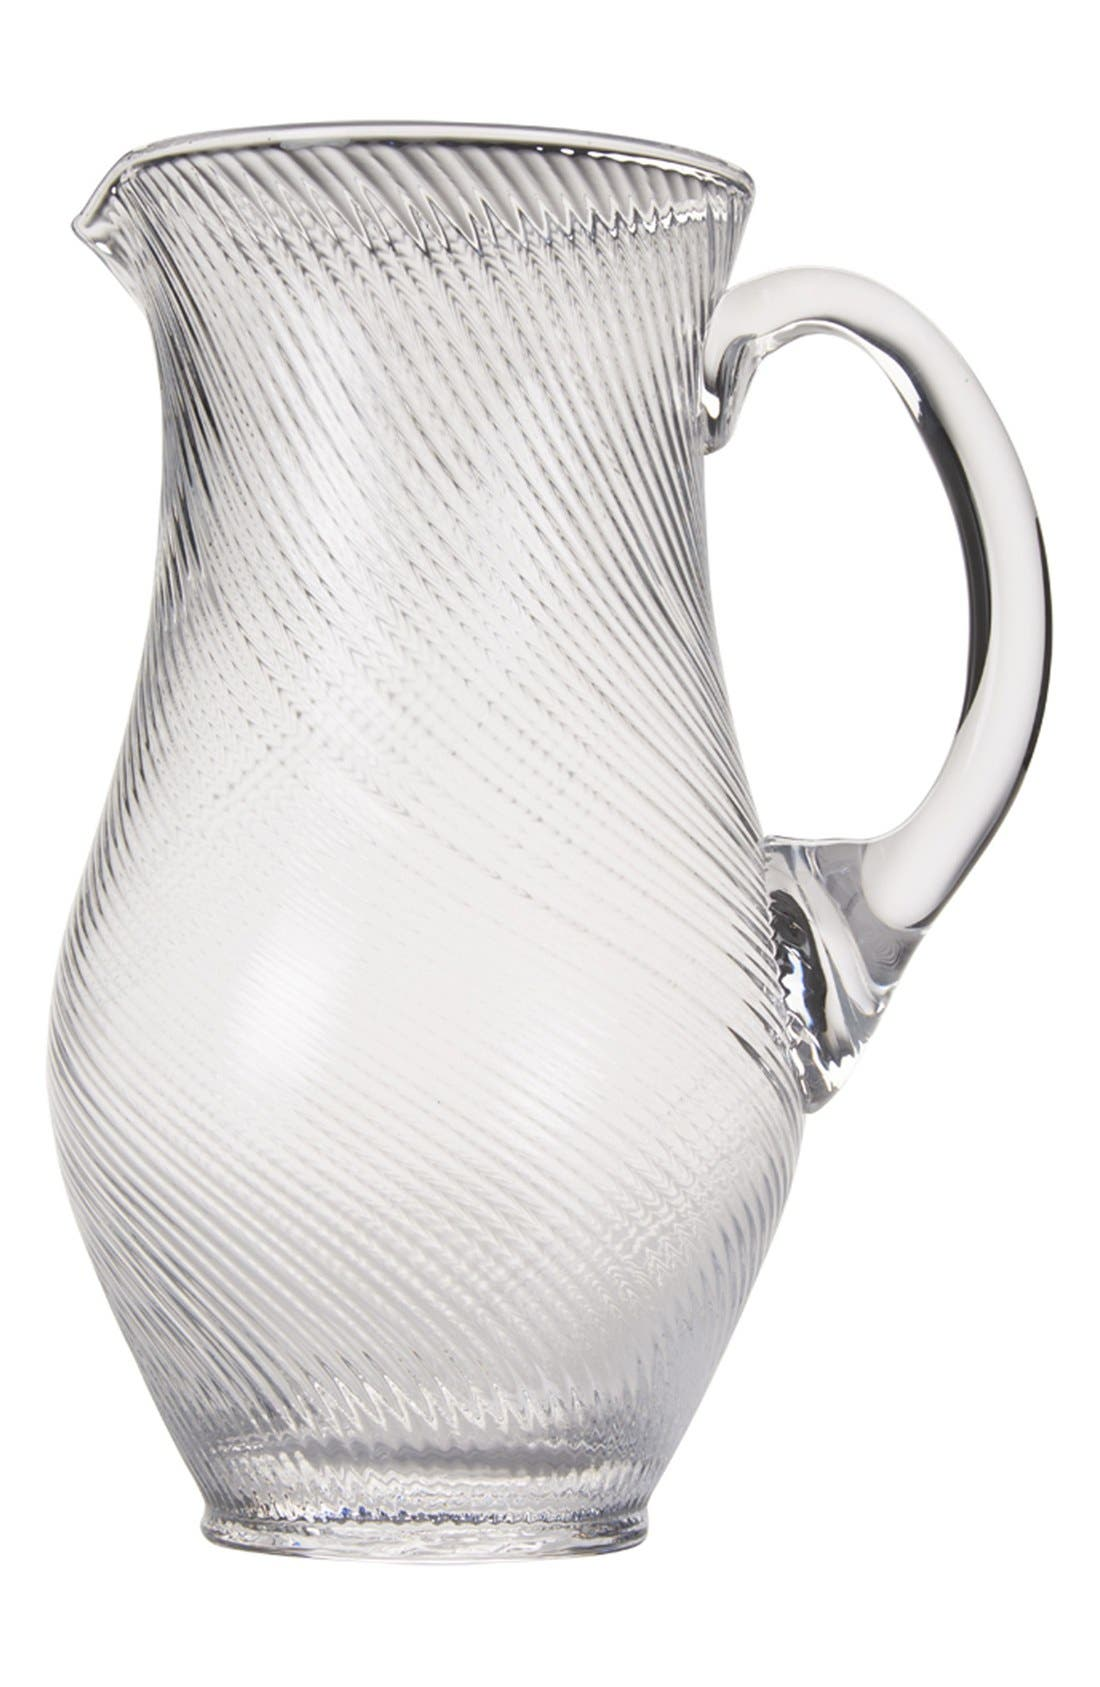 Alternate Image 1 Selected - Juliska 'Arabella' Glass Pitcher